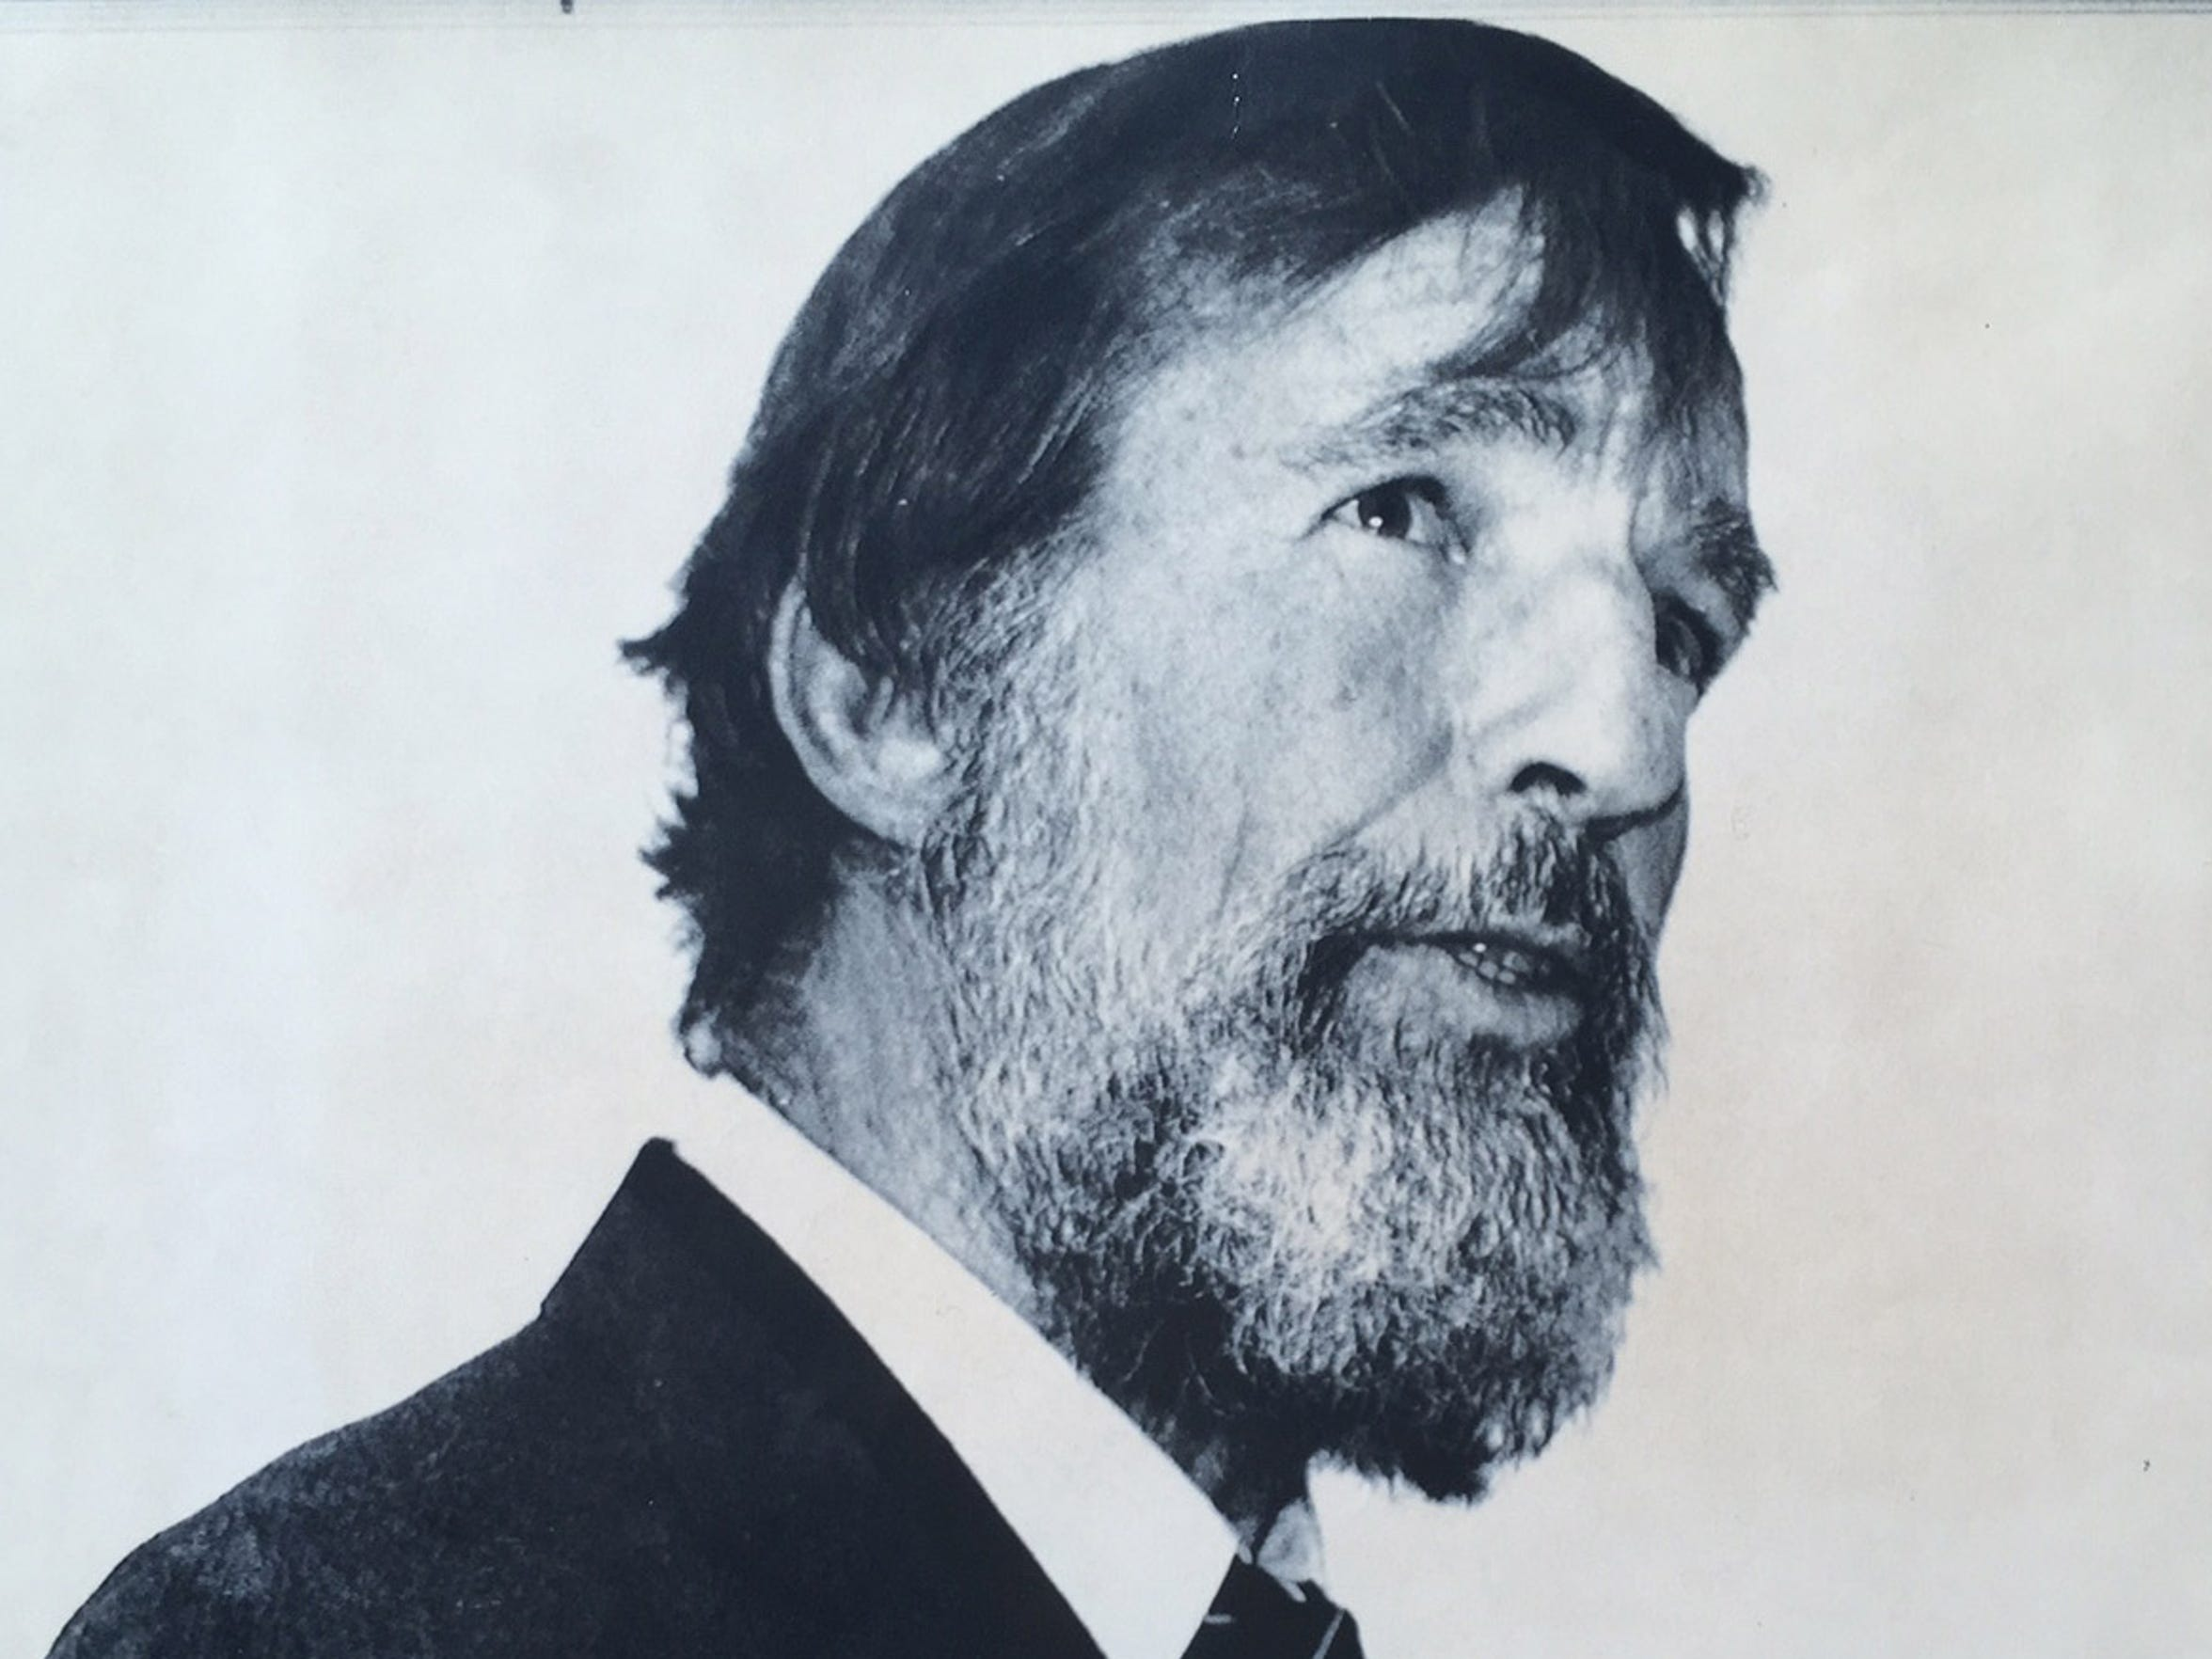 Famed writer and environmentalist Edward Abbey seen